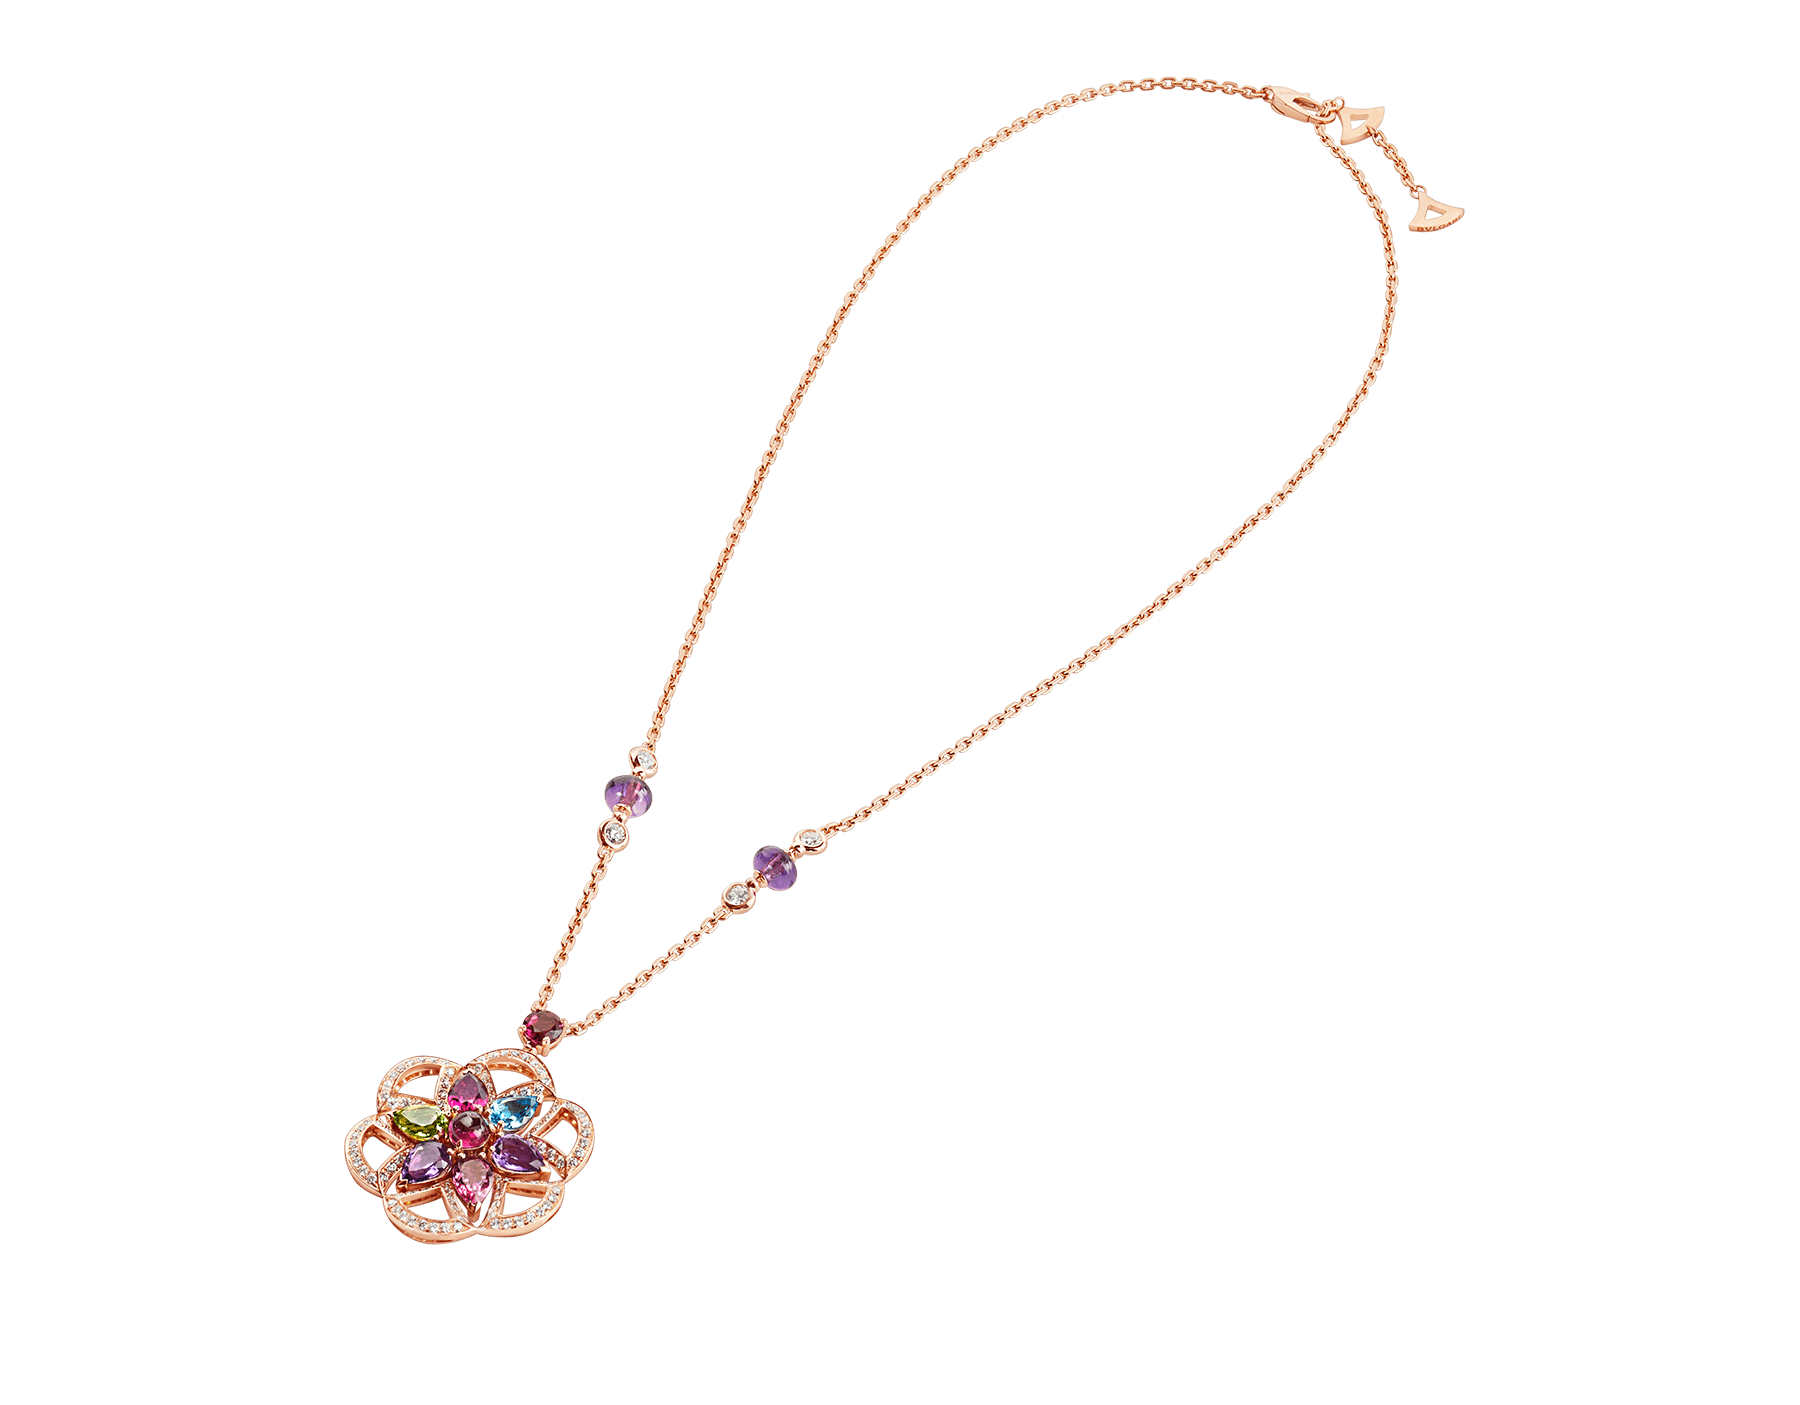 DIVAS' DREAM 18 kt rose gold necklace set with coloured gemstones and pavé diamonds 355617 image 2